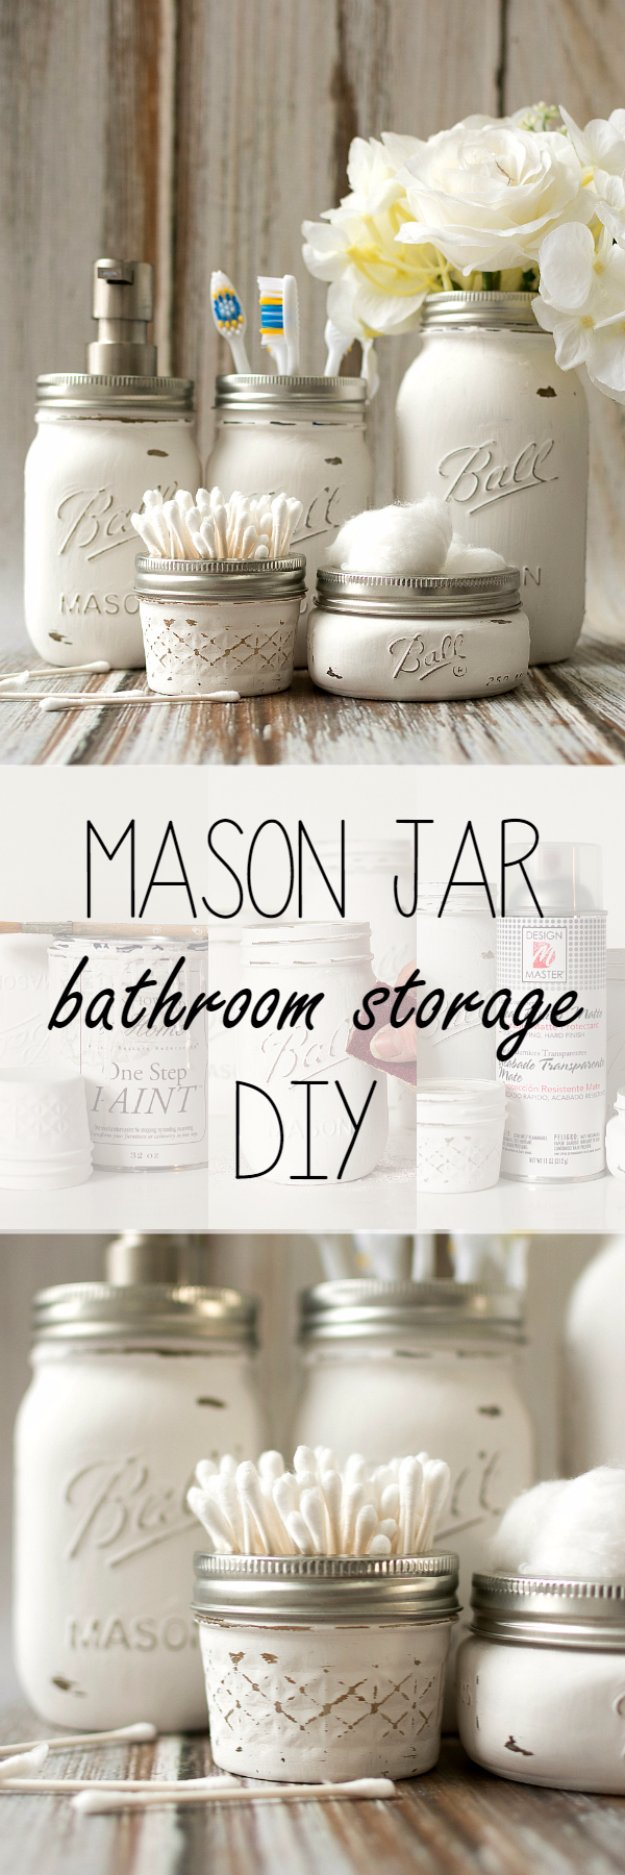 Bathroom decor ideas diy - Diy Bathroom Decor Ideas Mason Jar Bathroom Storage Accessories Cool Do It Yourself Bath